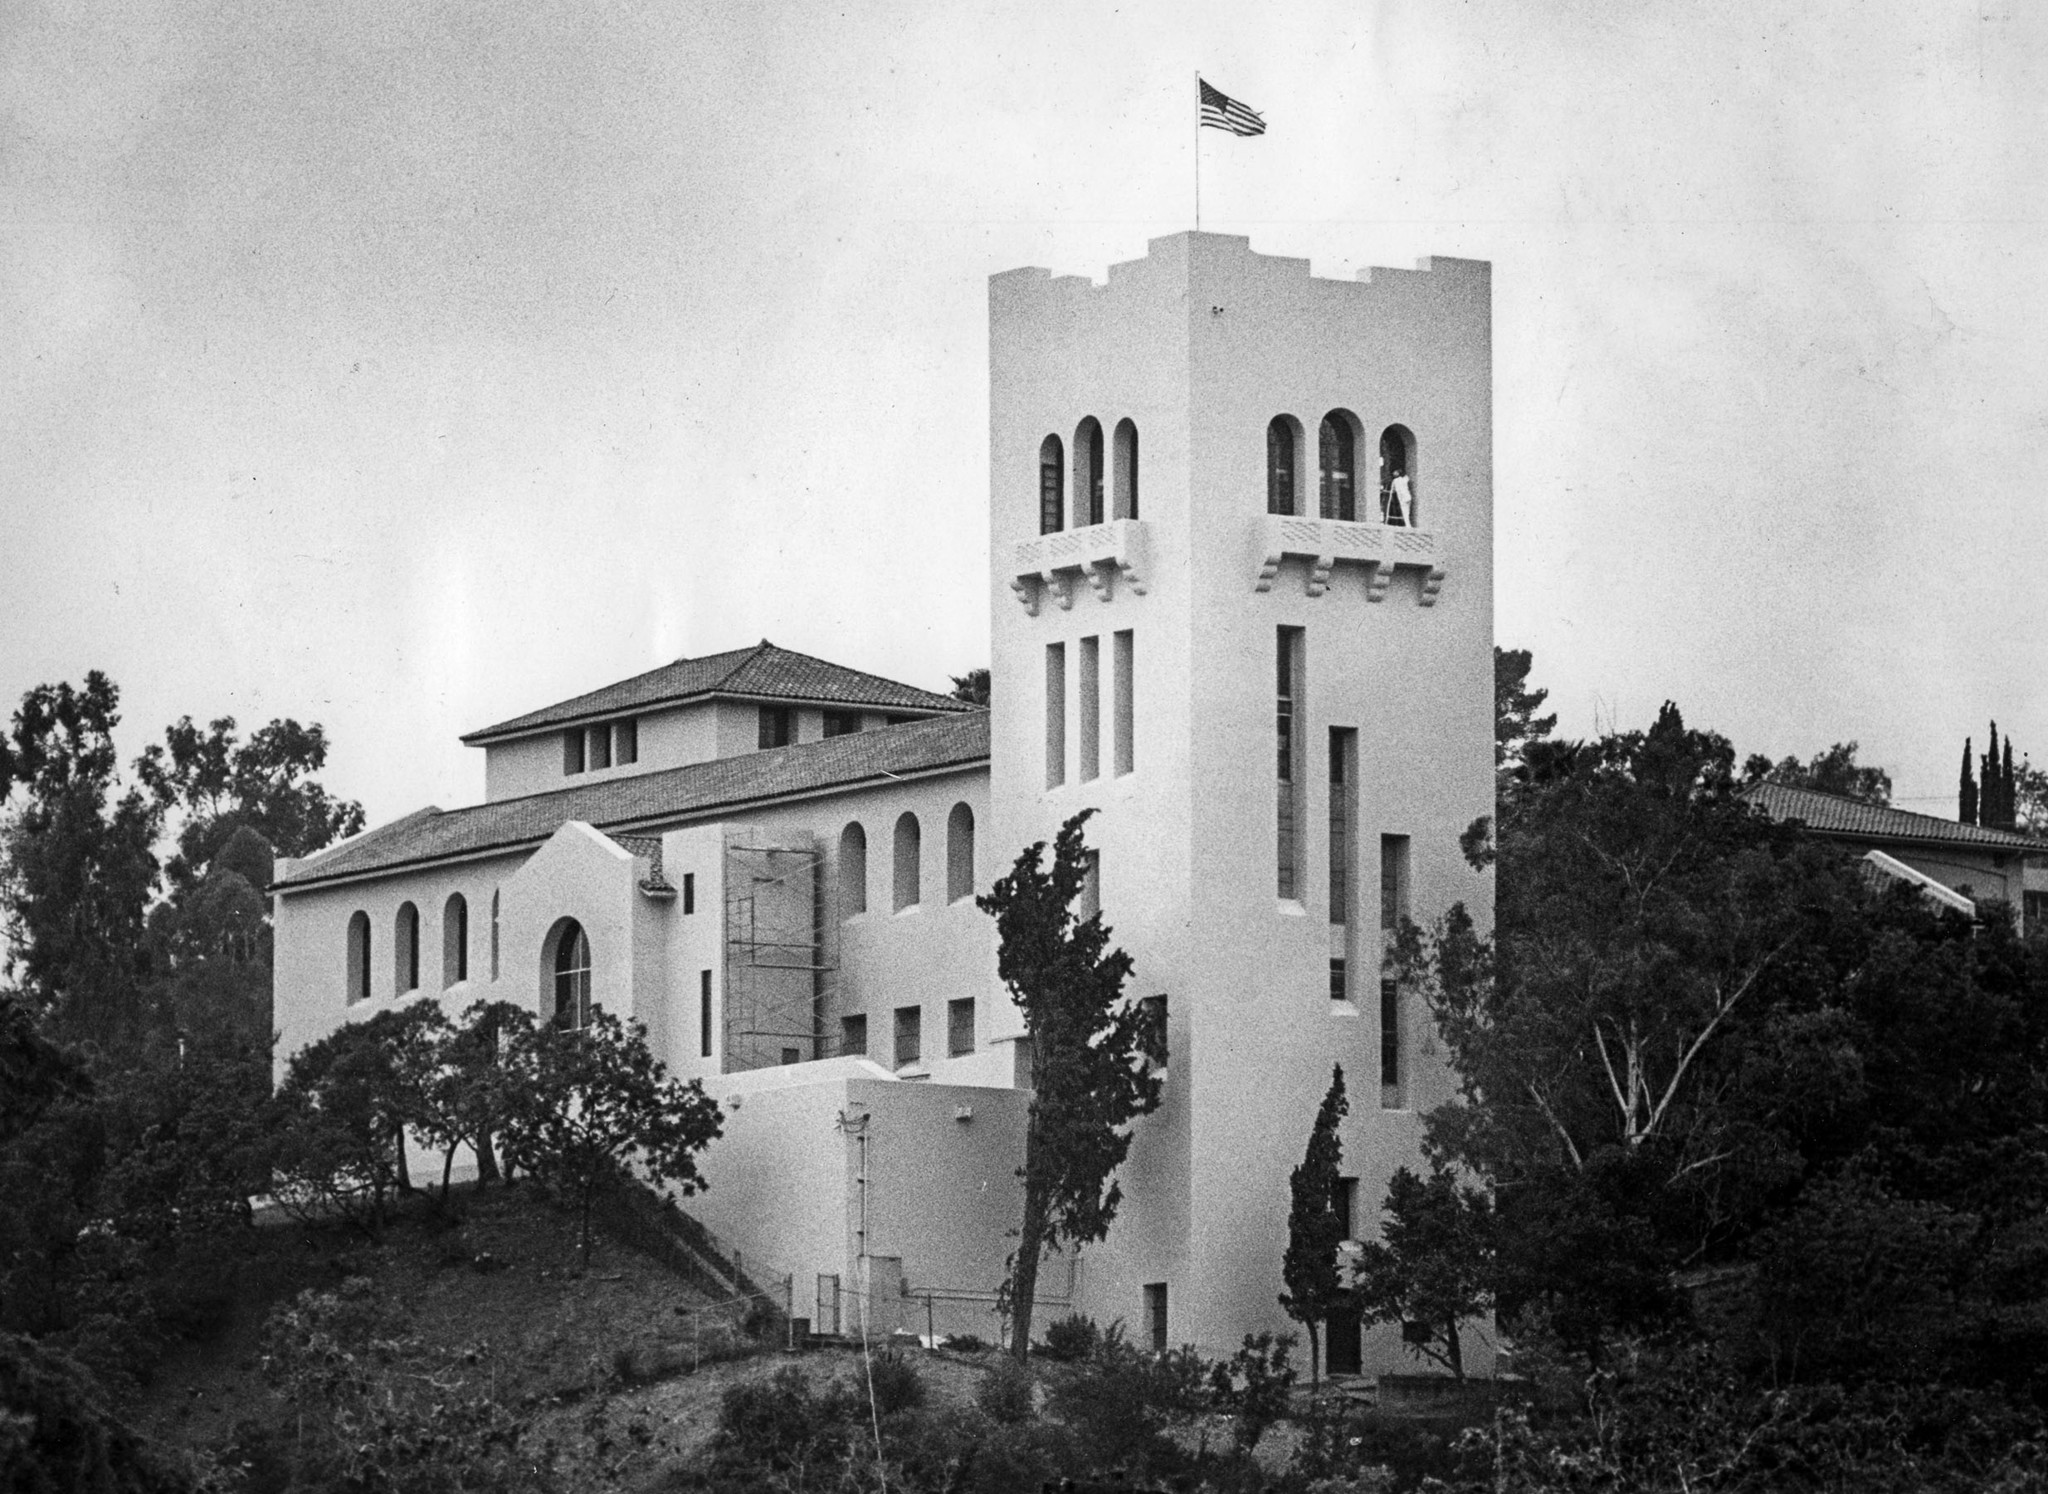 May 10, 1983: The Southwest Museum on a hill in Highland Park section of Los Angeles. This photo was